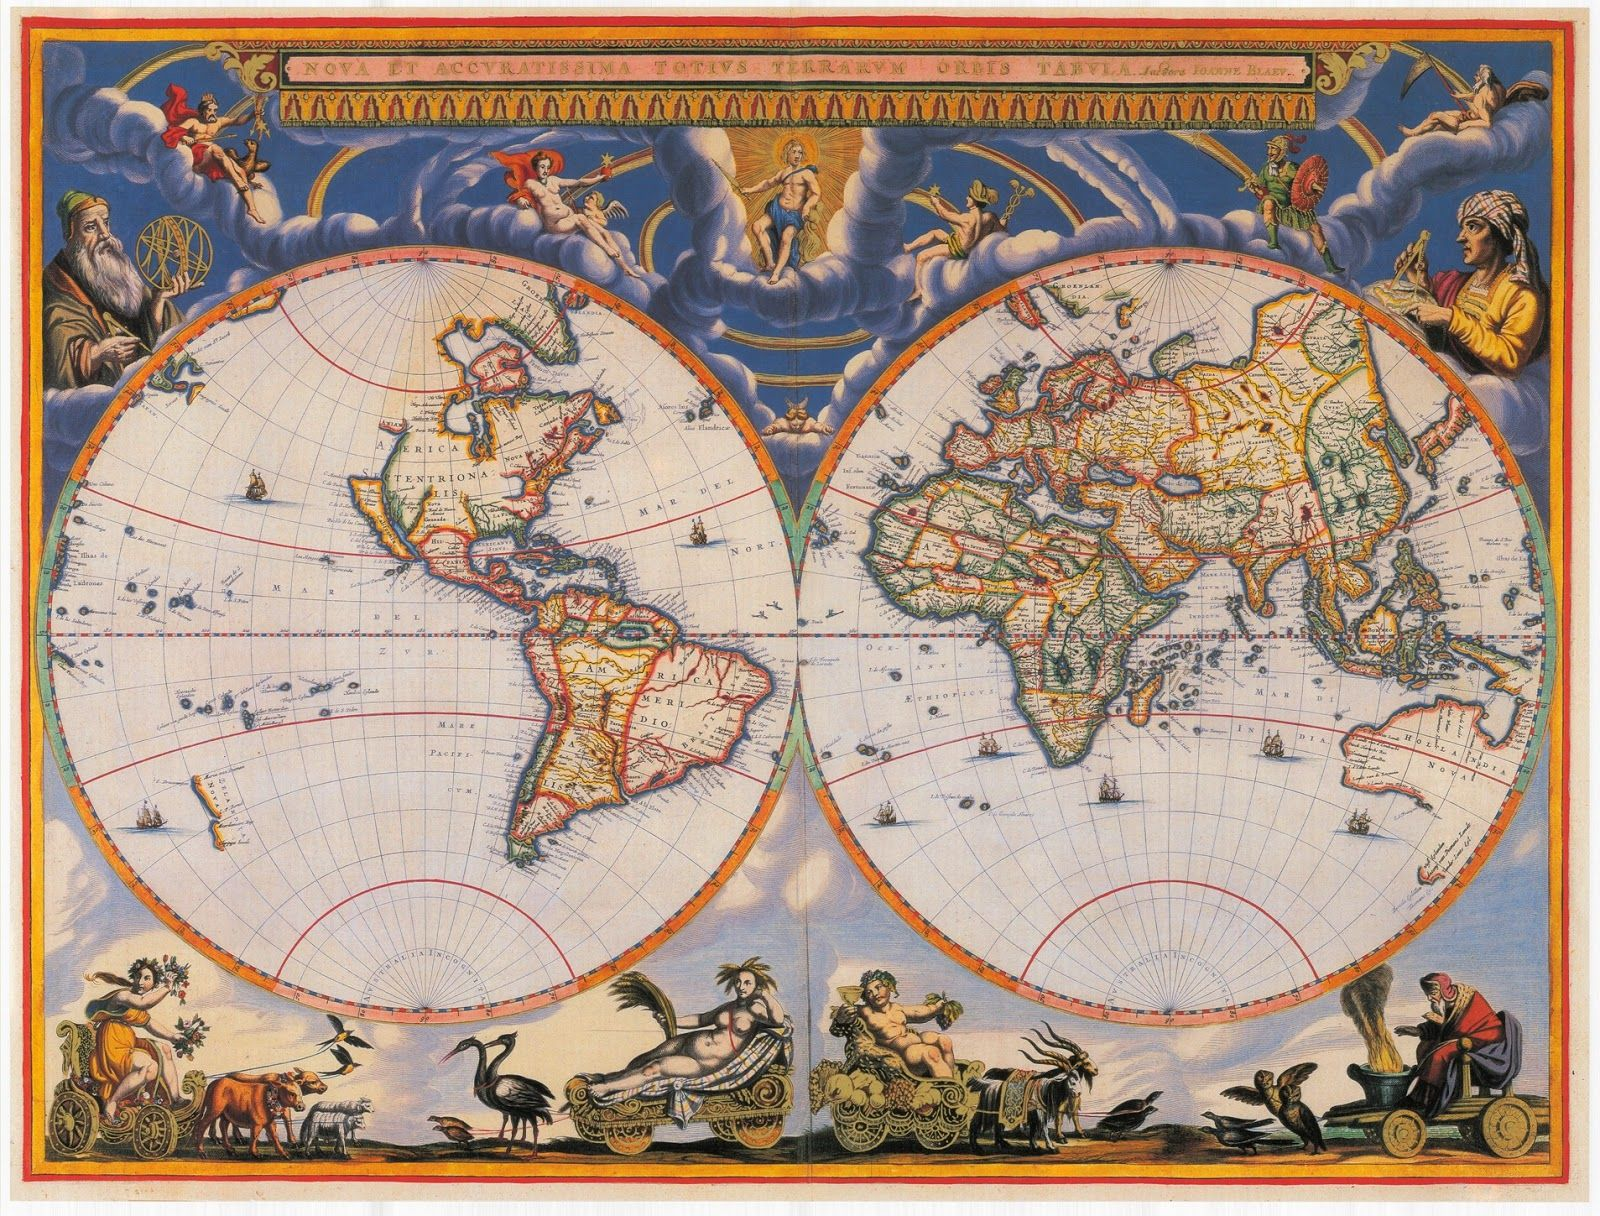 World map 17th century description high resolution world map made world map 17th century description high resolution world map made by the dutch cartographer joan blaeu in 1662 gumiabroncs Image collections